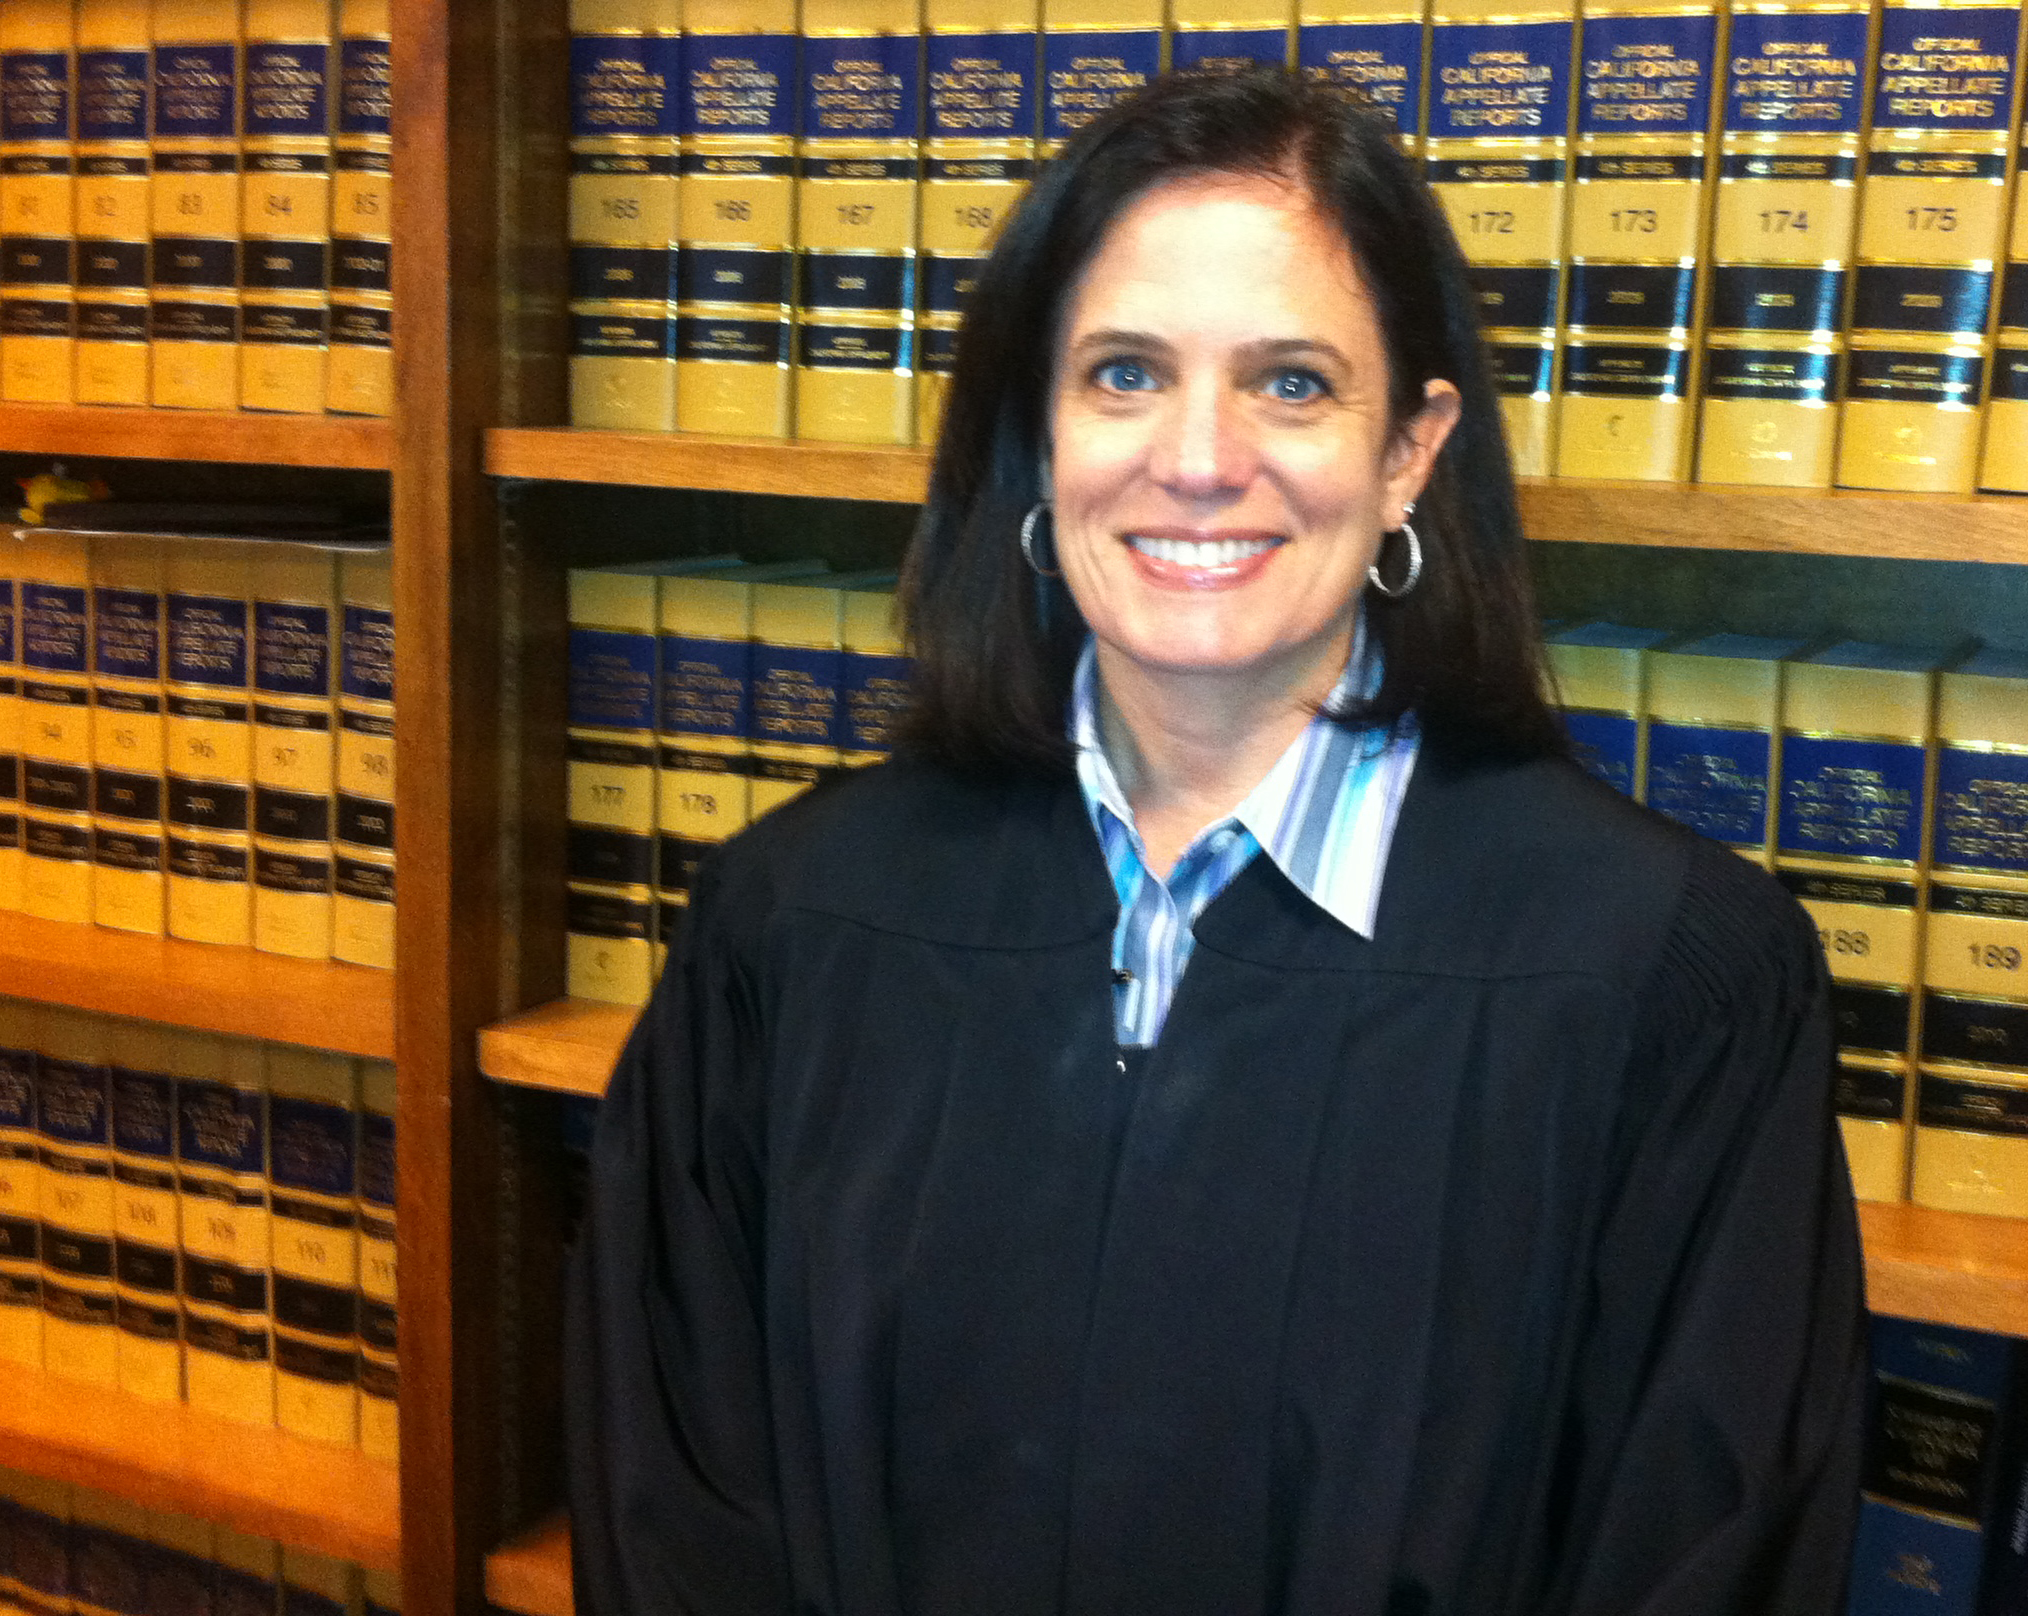 "President Barack Obama nominated UCLA alumna Judge Beverly Reid O'Connell to the United States District Court for the Central District of California. O'Connell earned a bachelor's degree from UCLA and still holds season tickets for UCLA football games """" she attended Saturday's game against USC."